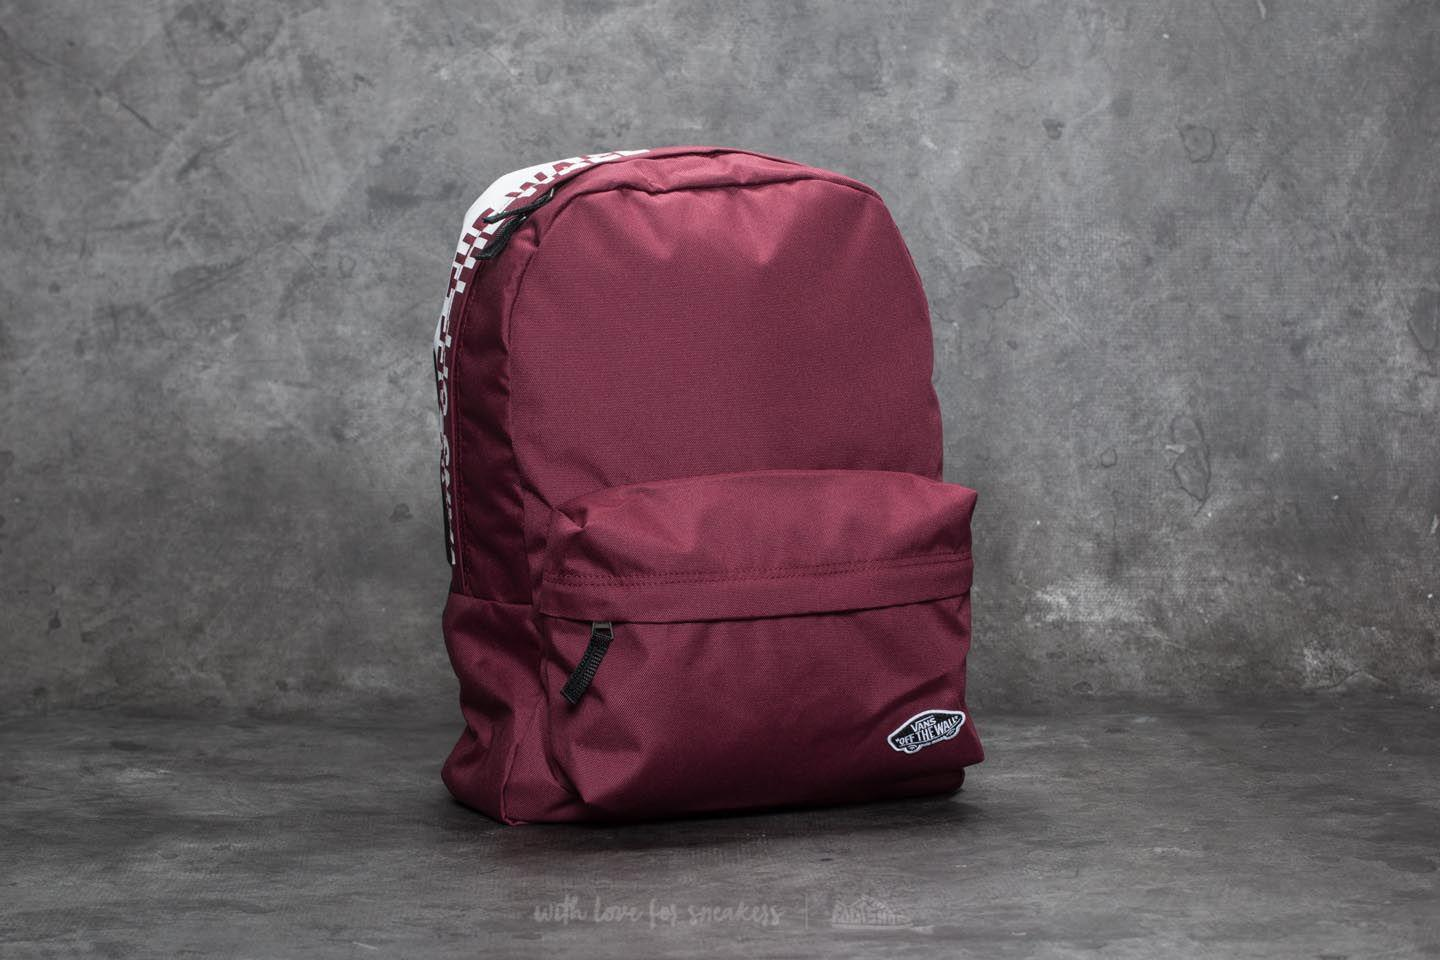 b8f47e26b8a Lyst - Vans Sporty Realm Backpack Burgundy